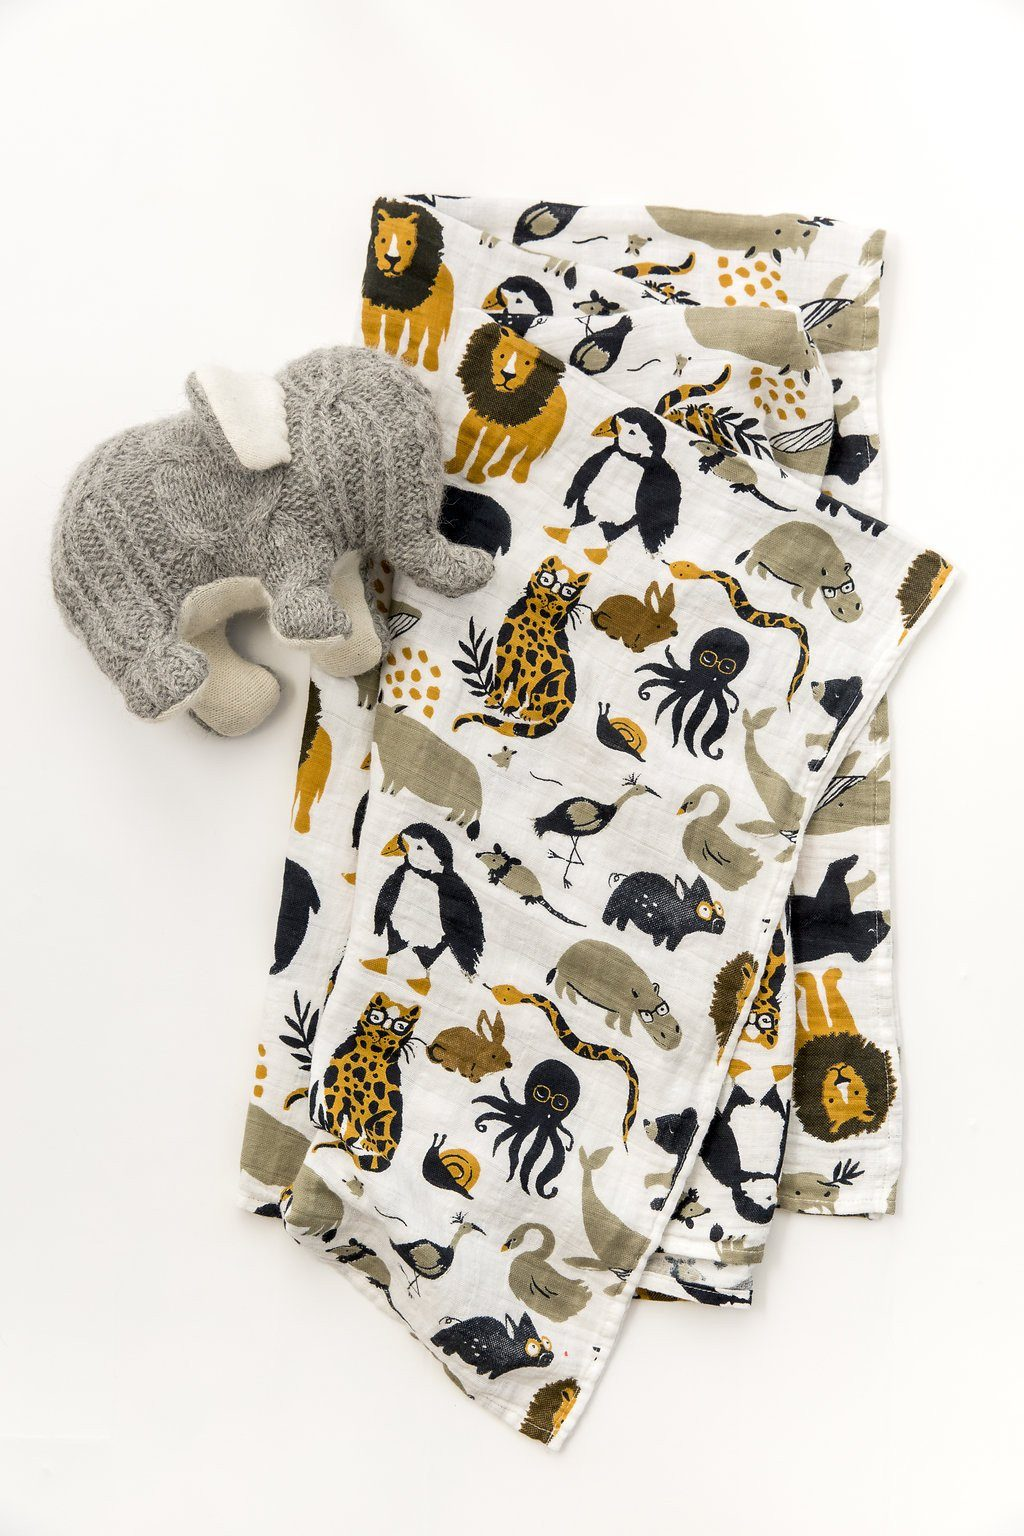 Zoology Swaddle Blanket - Project Nursery